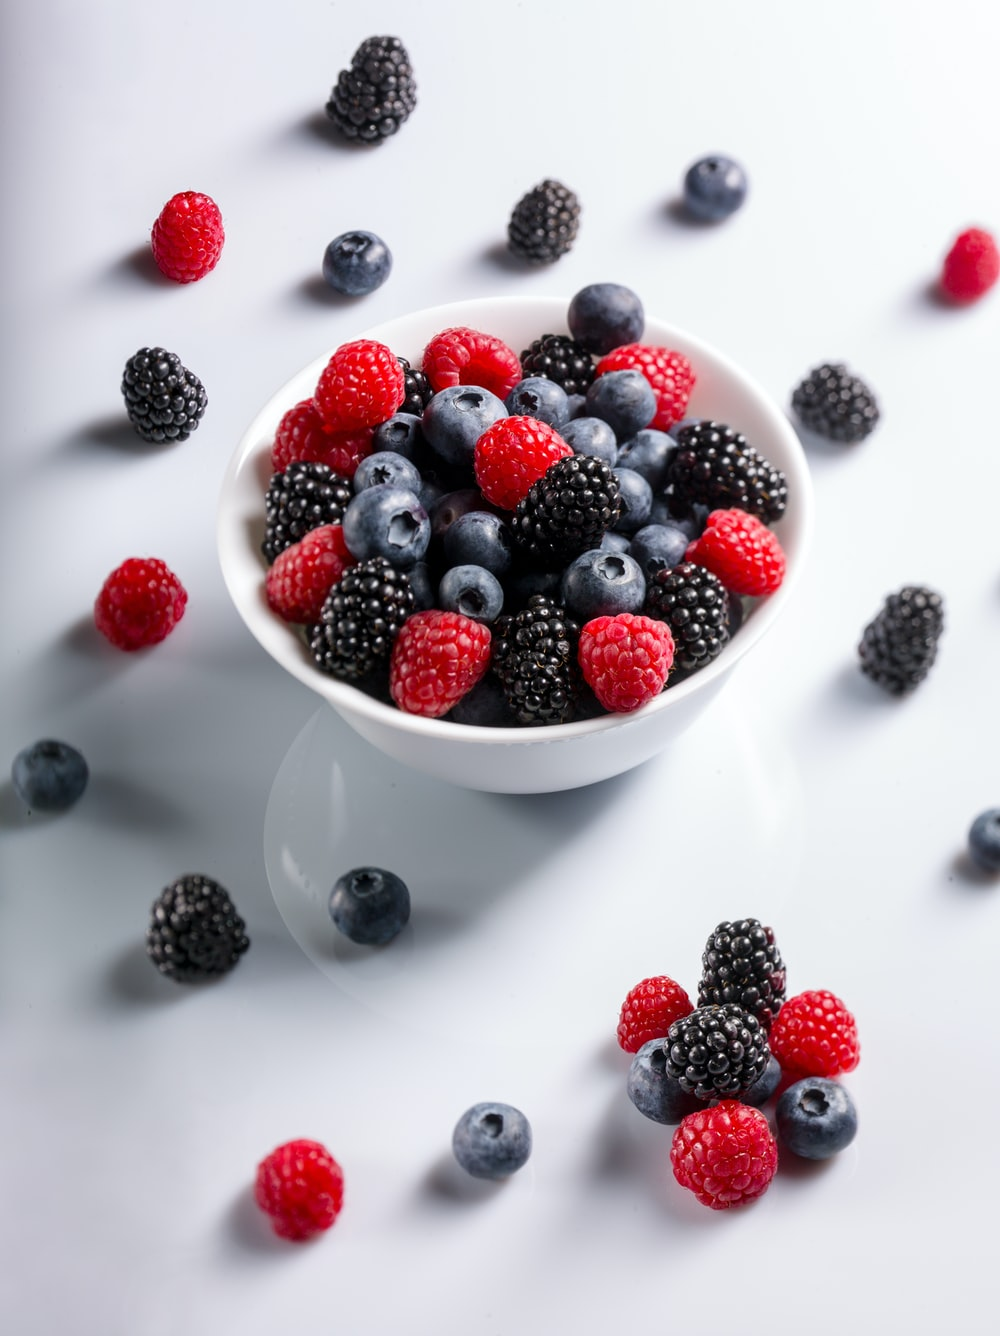 red and black raspberries on bowl